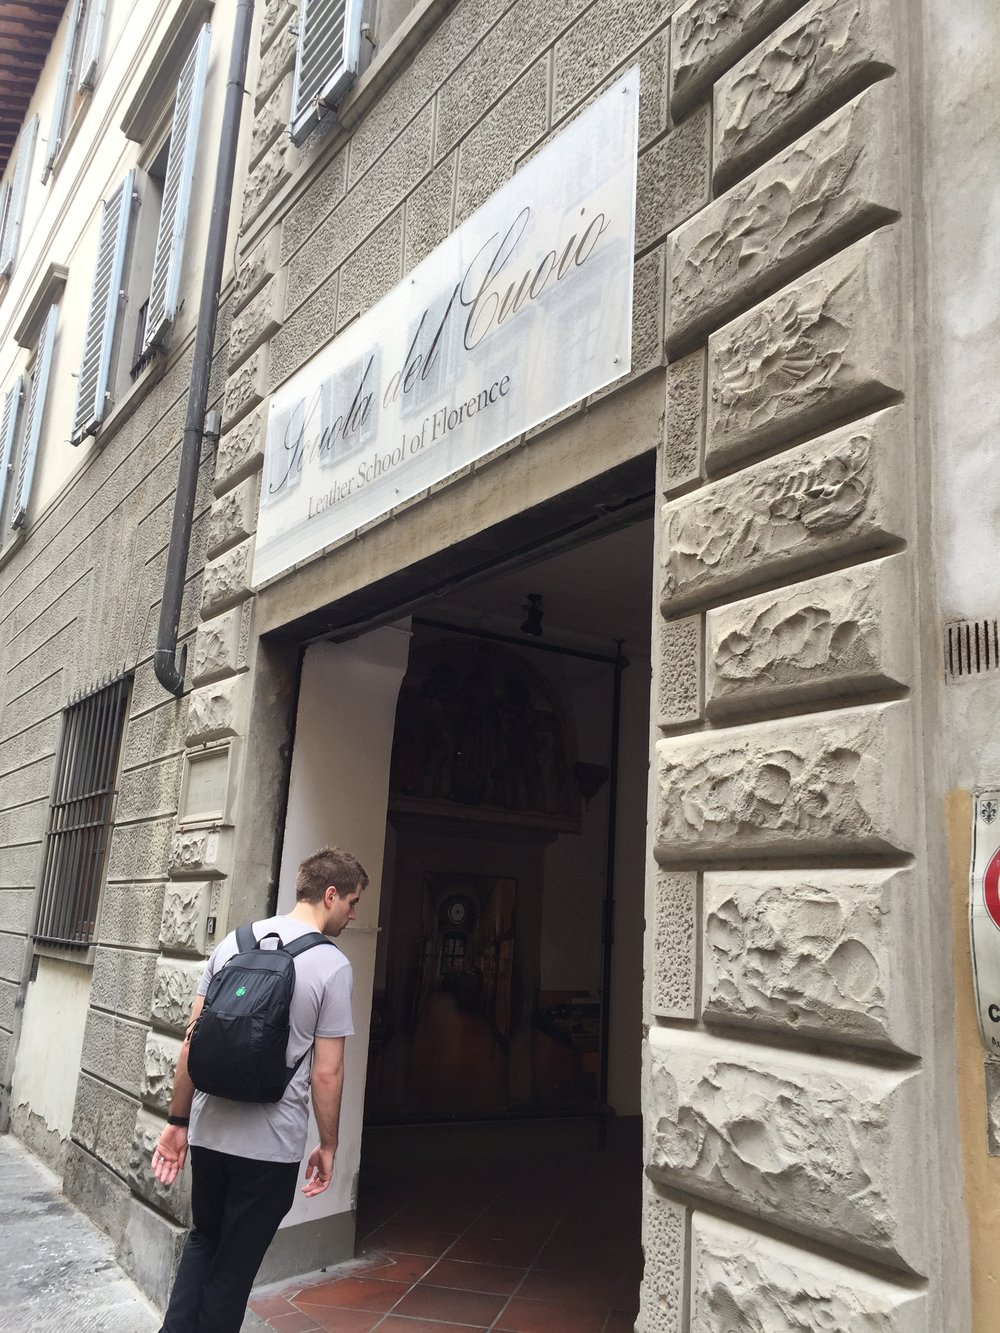 The Leather School of Florence is tucked away behind the Santa Croce Church and is a must-visit when on the hunt of quality leather, especially wallets.